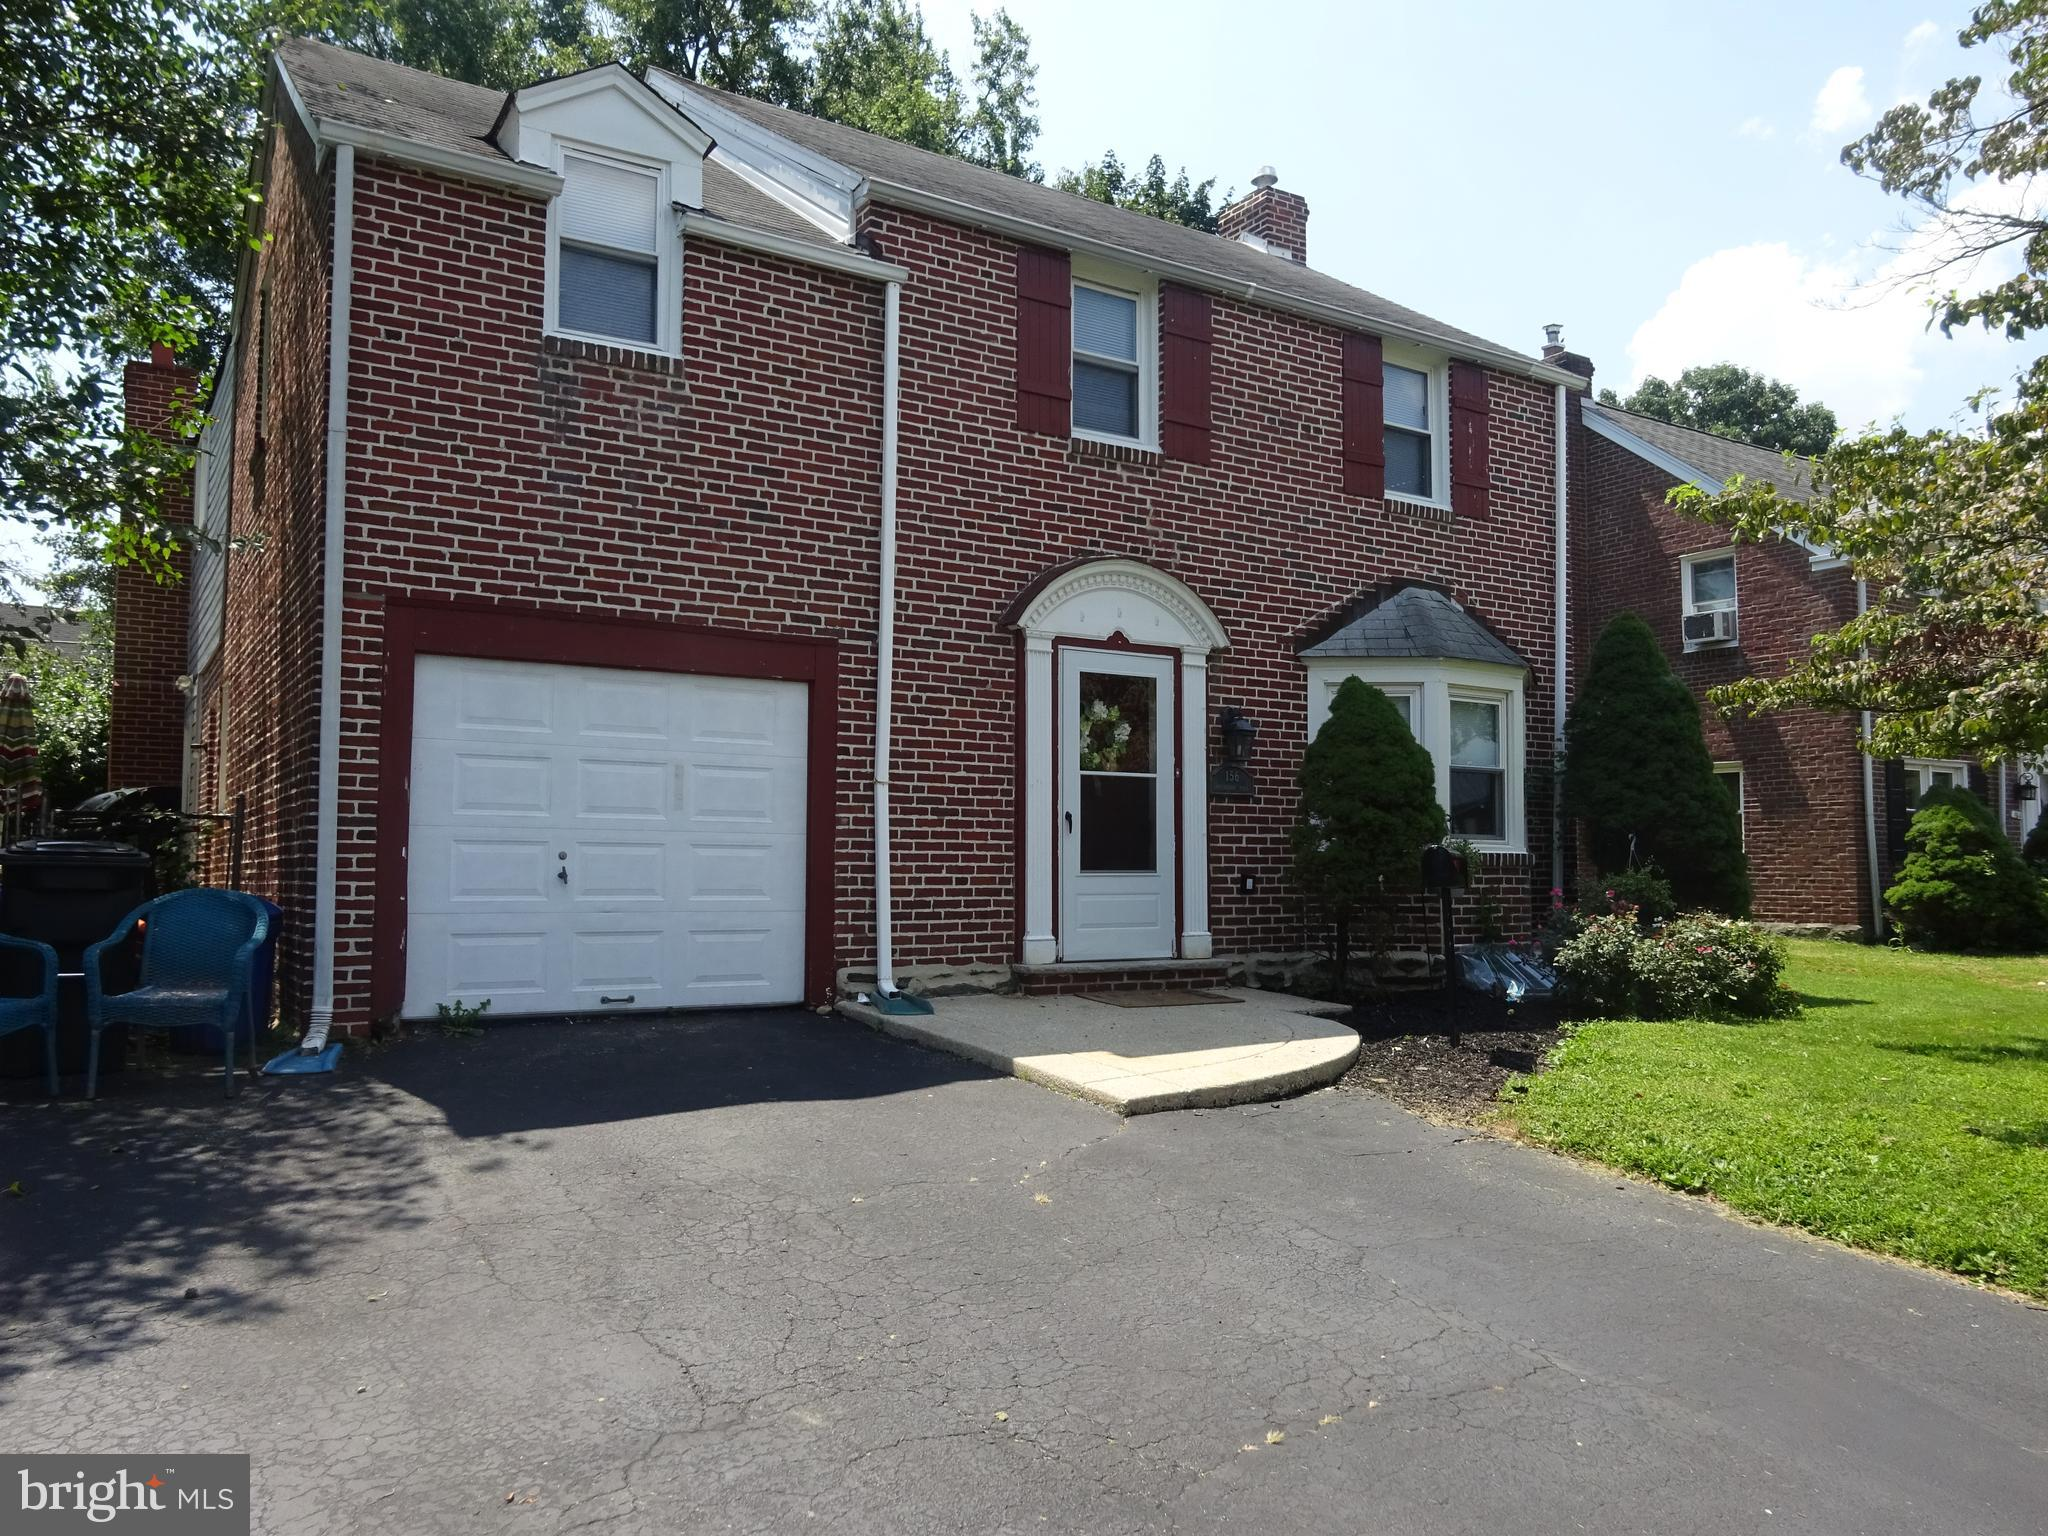 156 FRIENDSHIP ROAD, DREXEL HILL, PA 19026